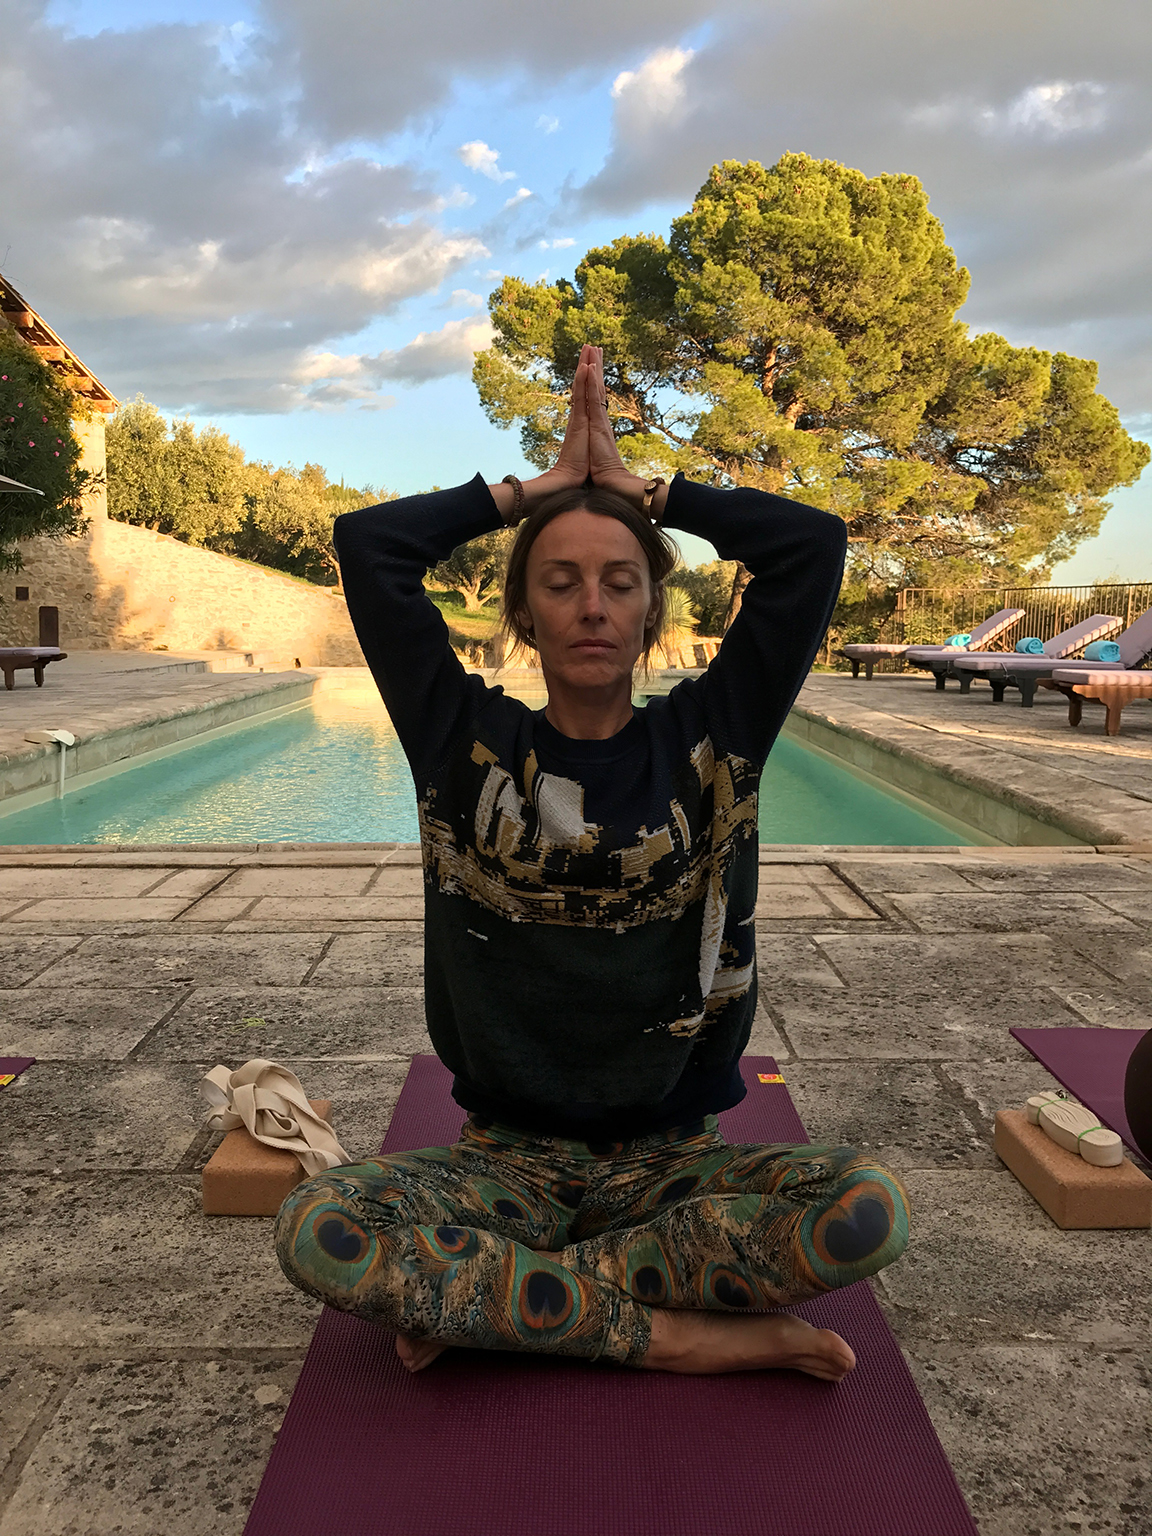 Séance de yoga au grand air avec Sibylle Grandchamp